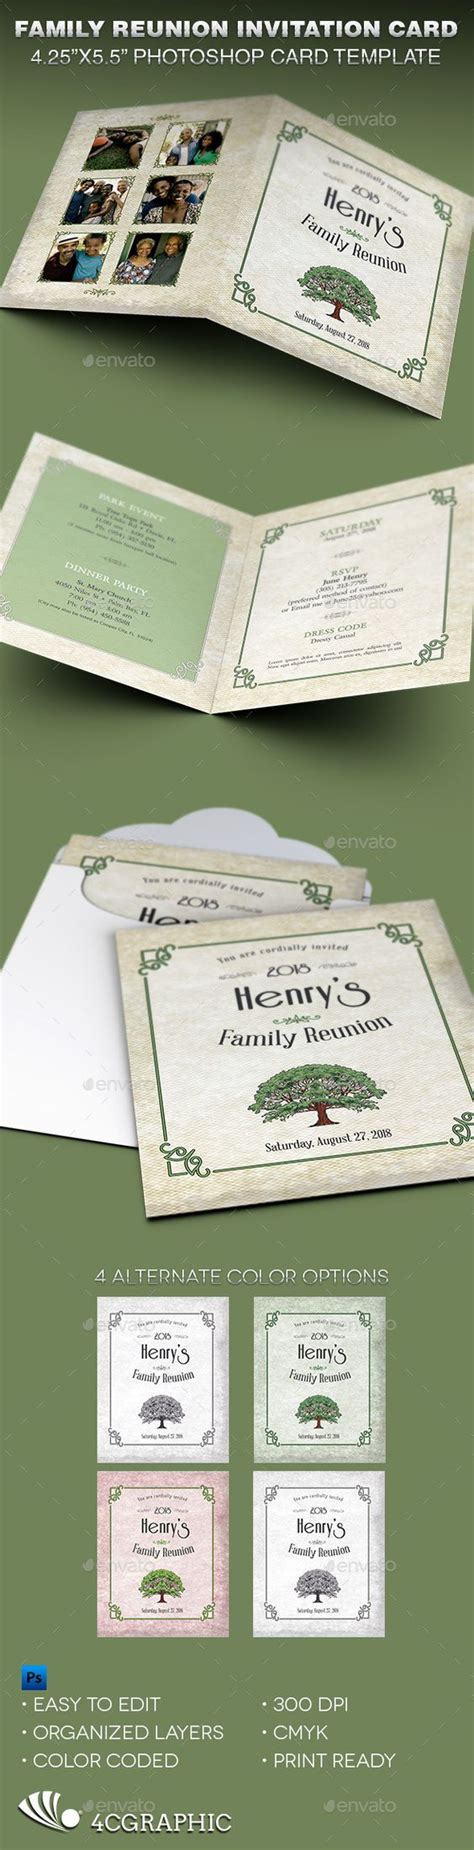 family reunion invitation card template reunions family